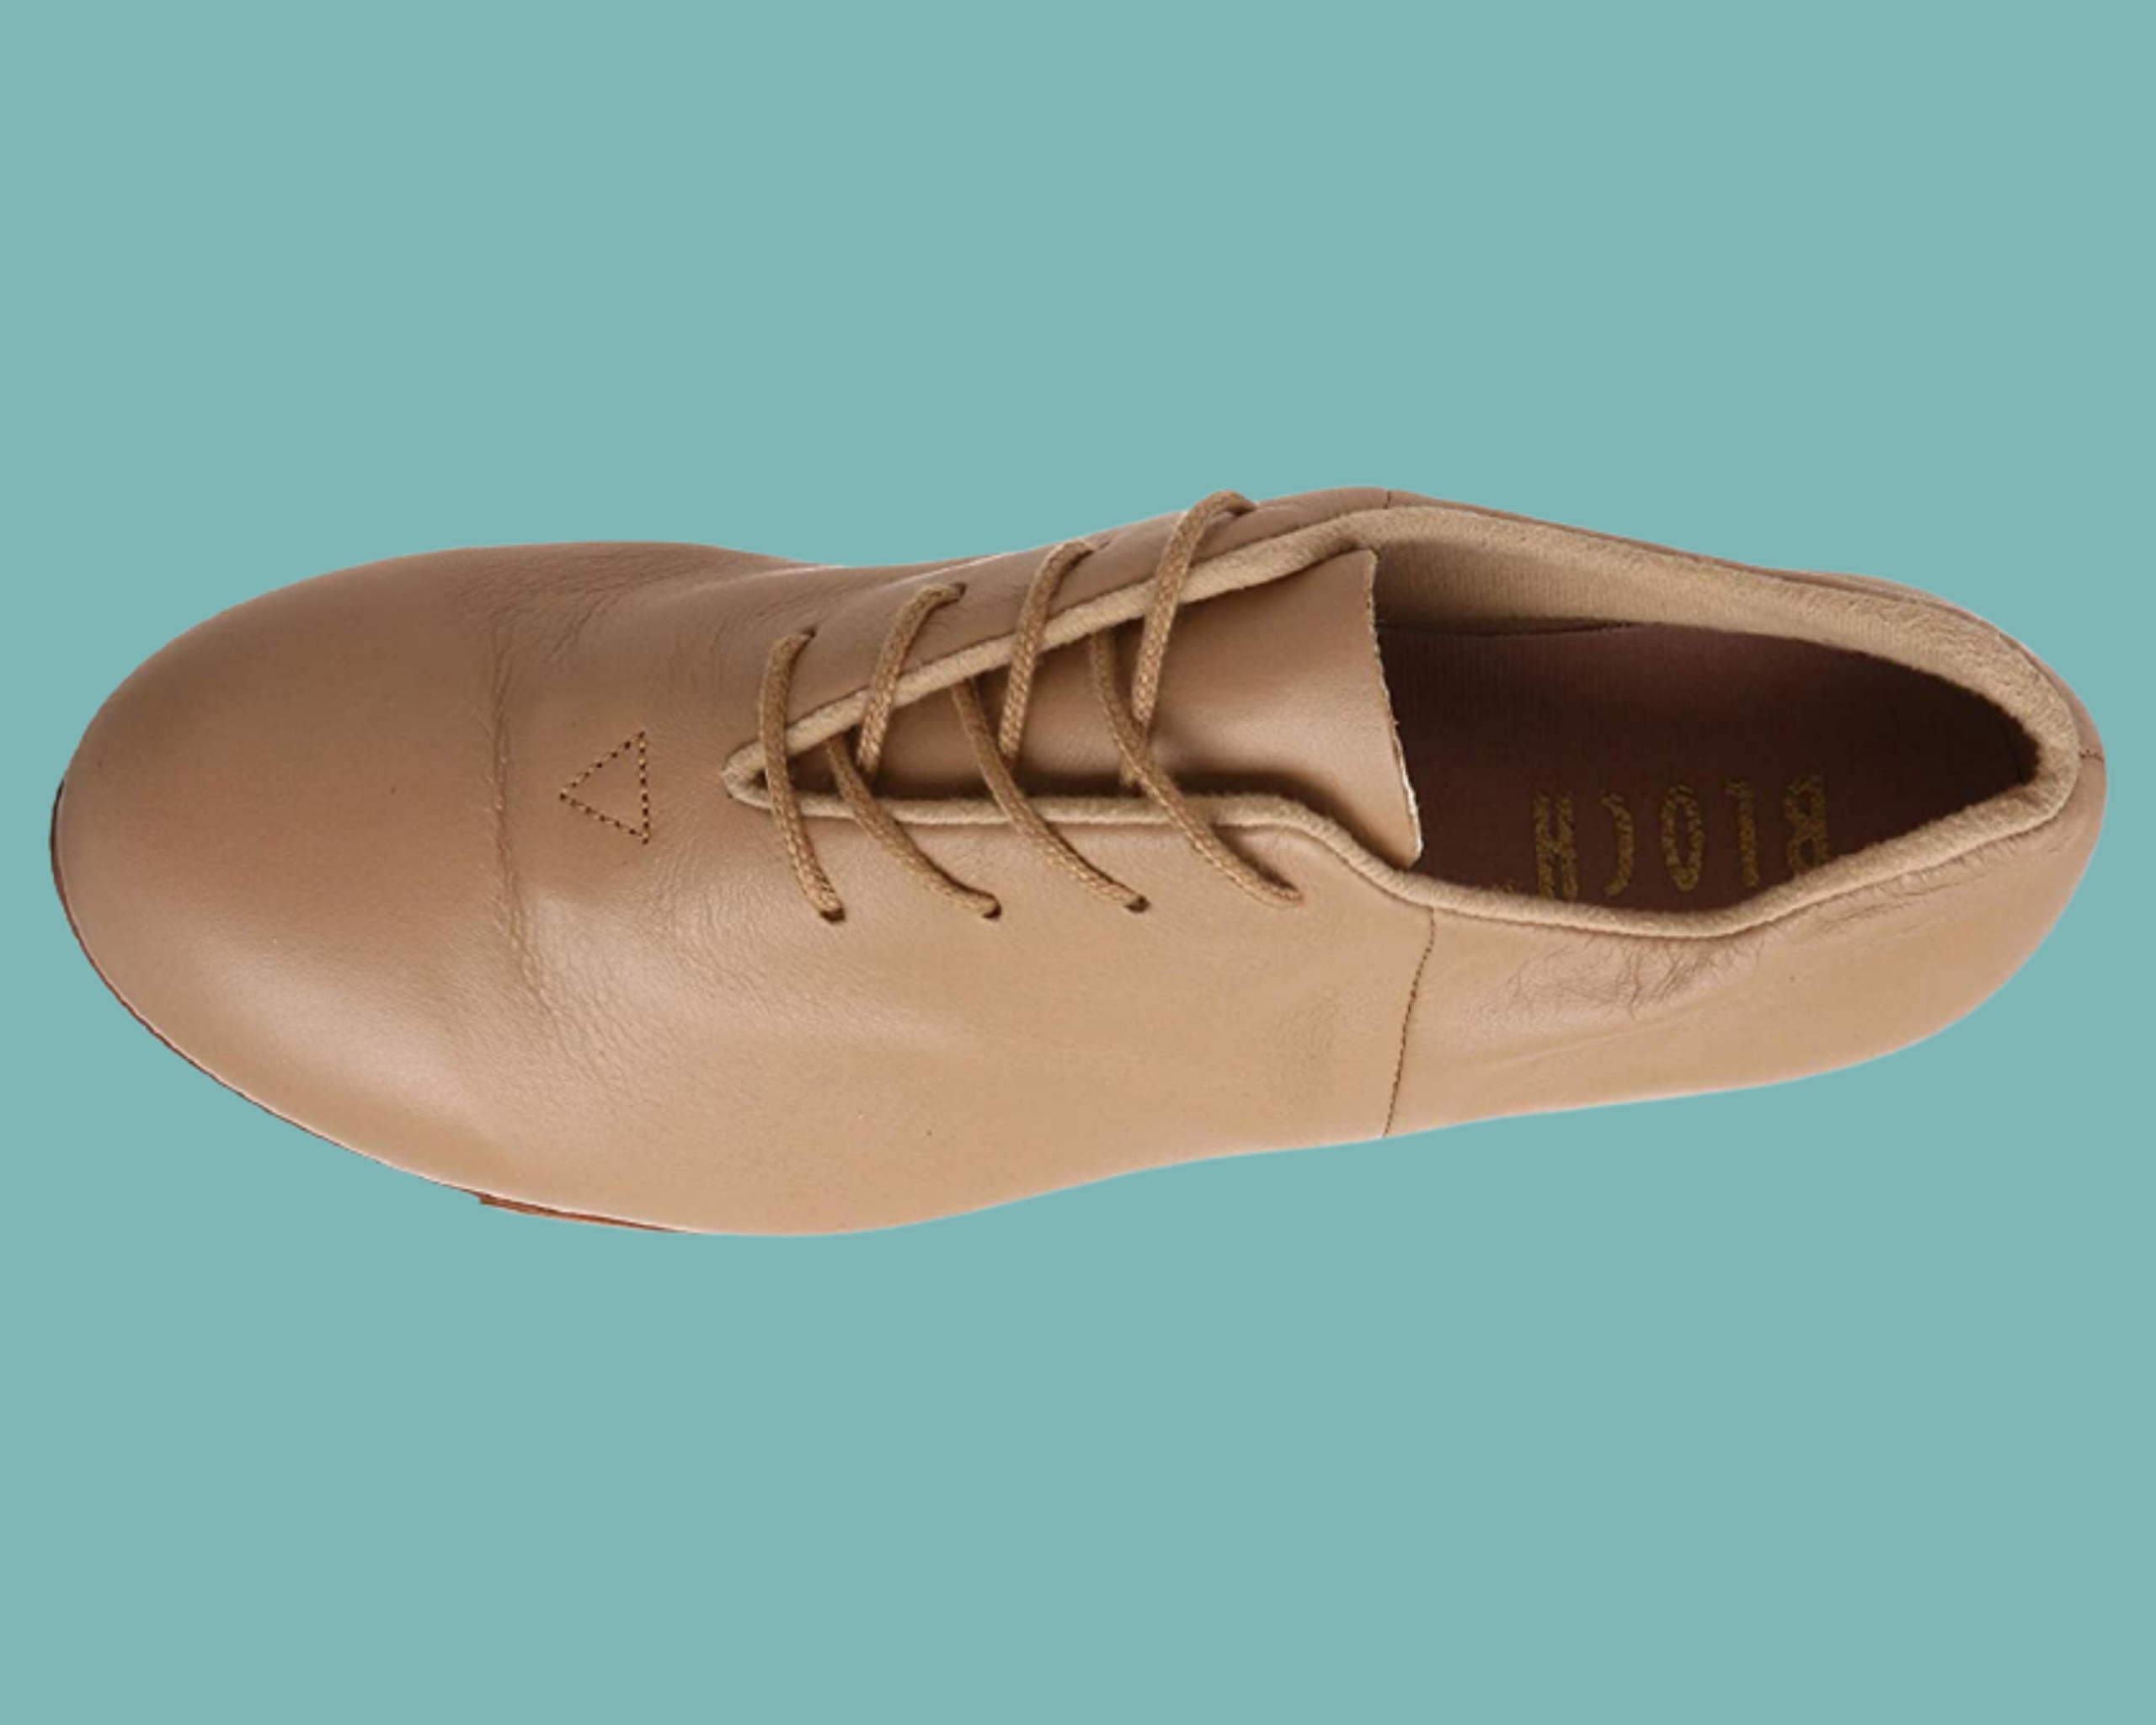 Oxford shoes best for women